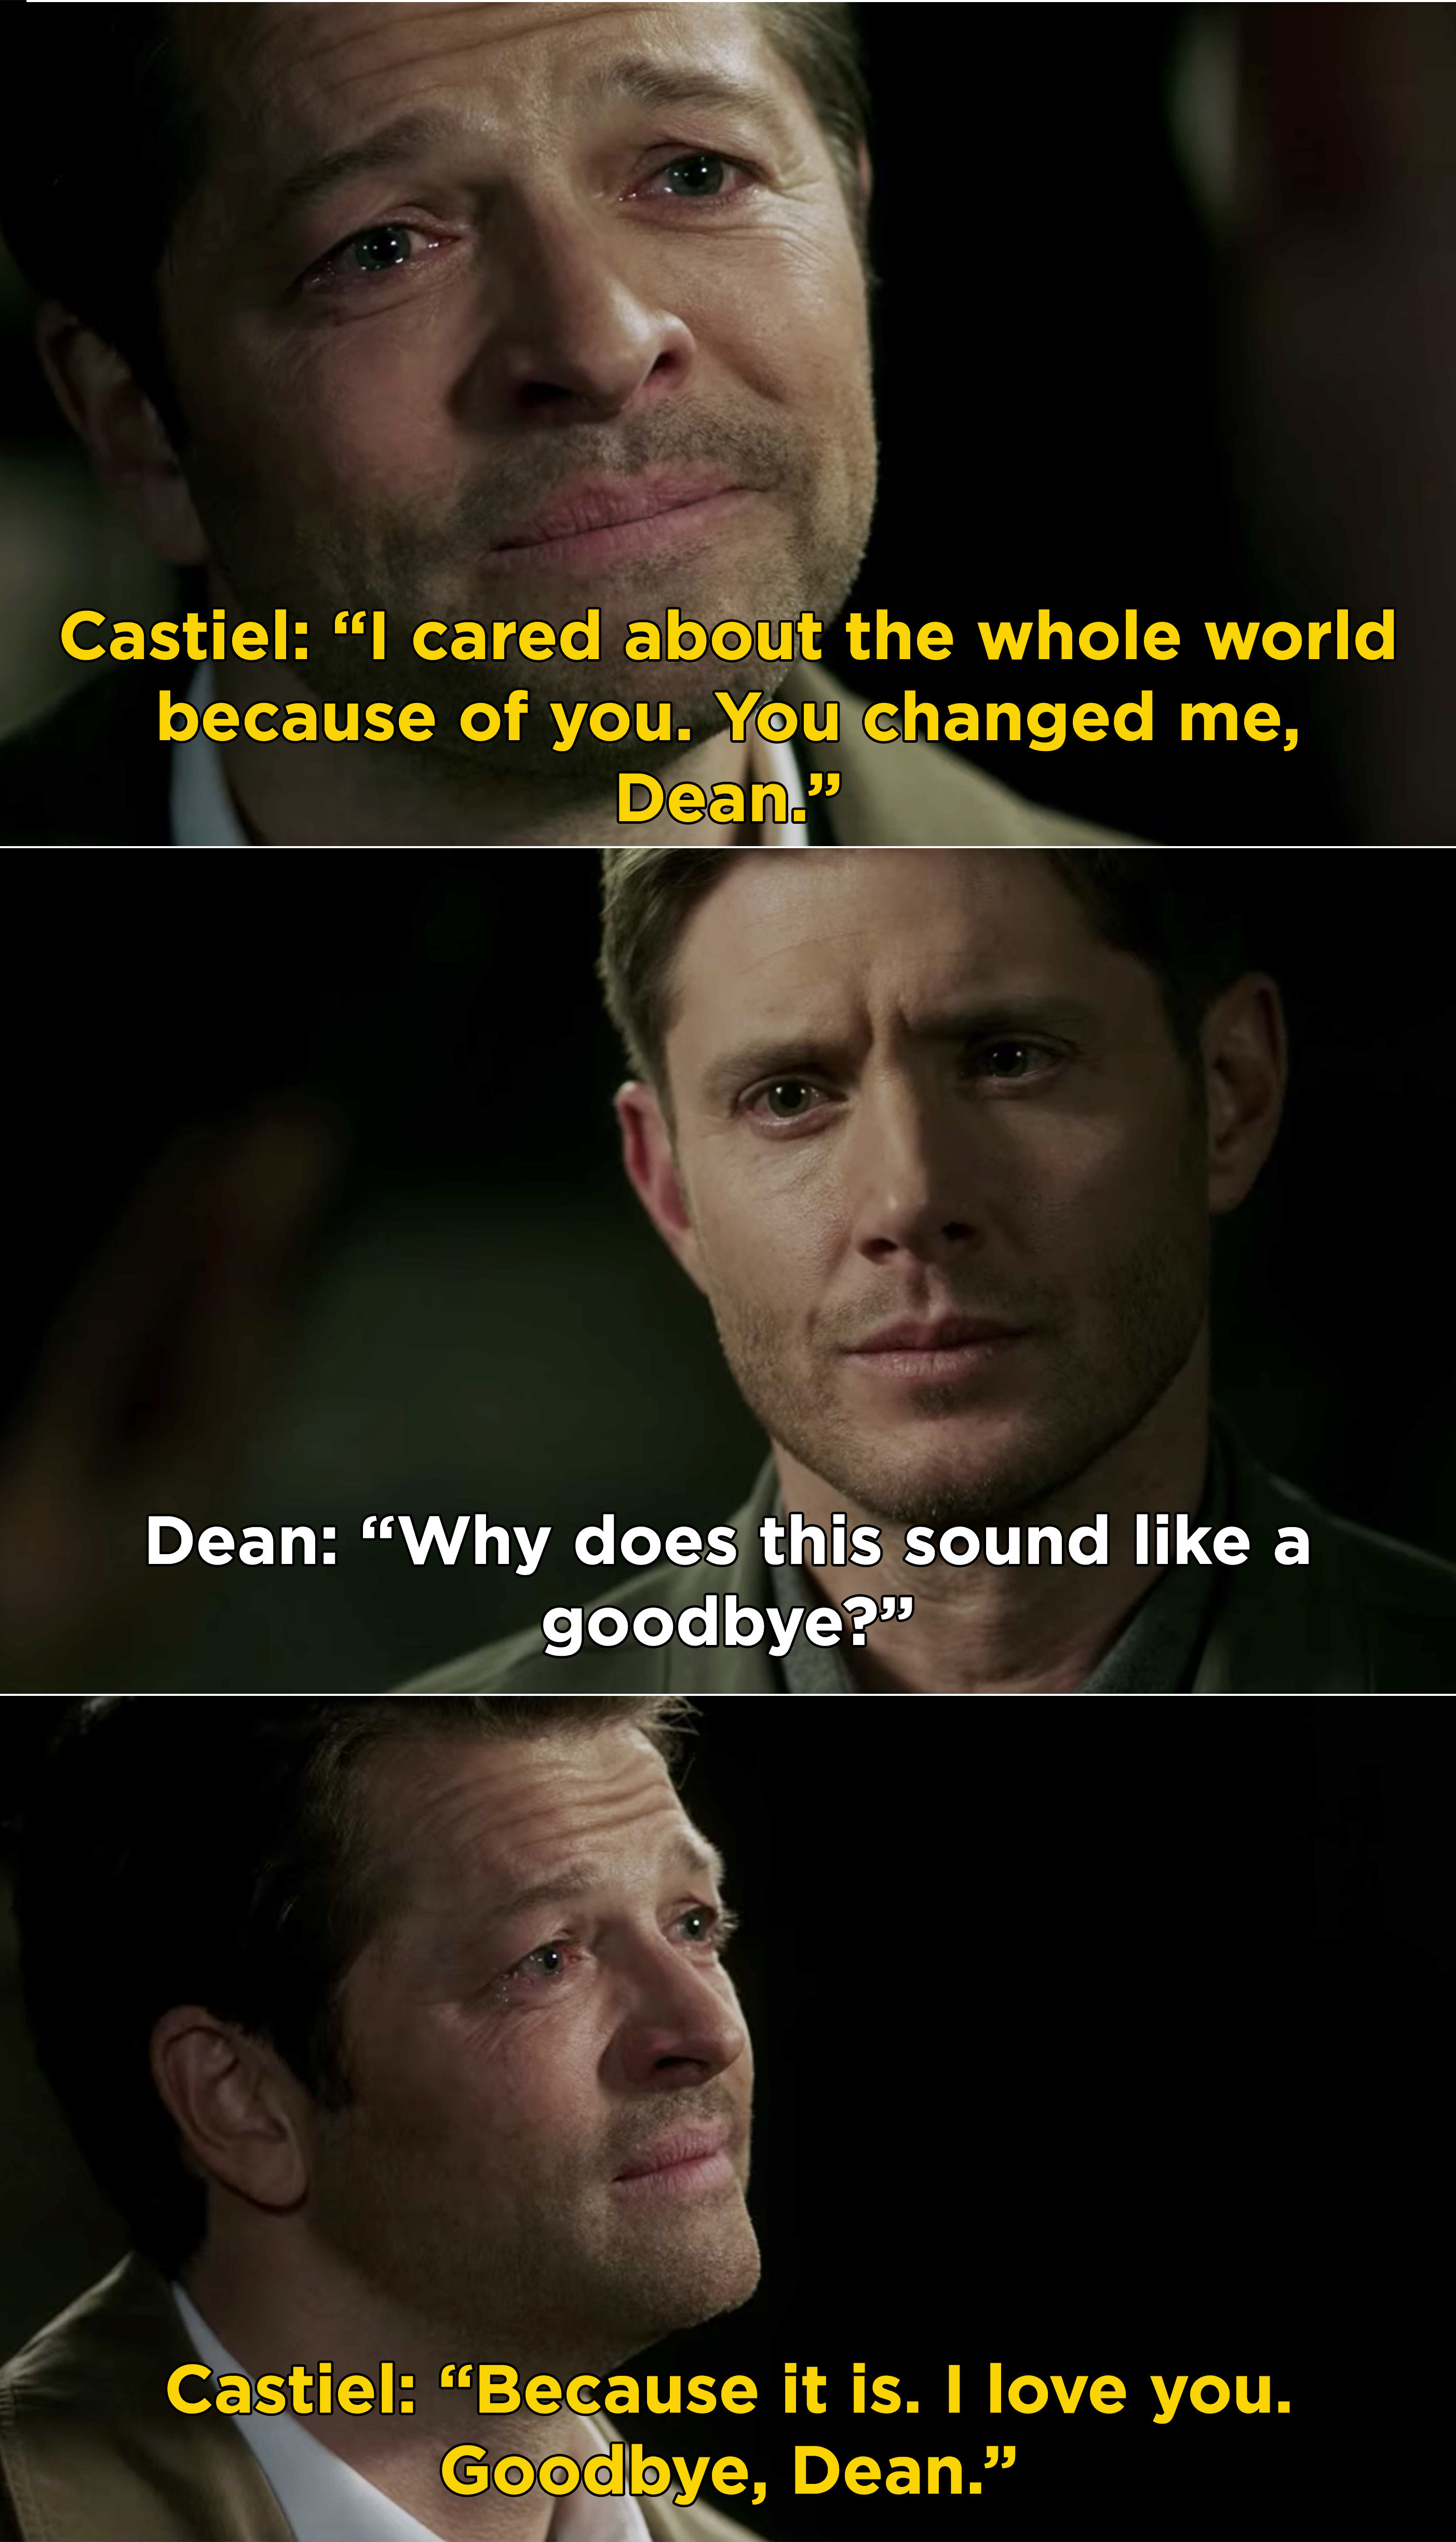 """Castiel weeping and telling Dean that he """"cared about the whole world"""" because of him and that he loves him"""